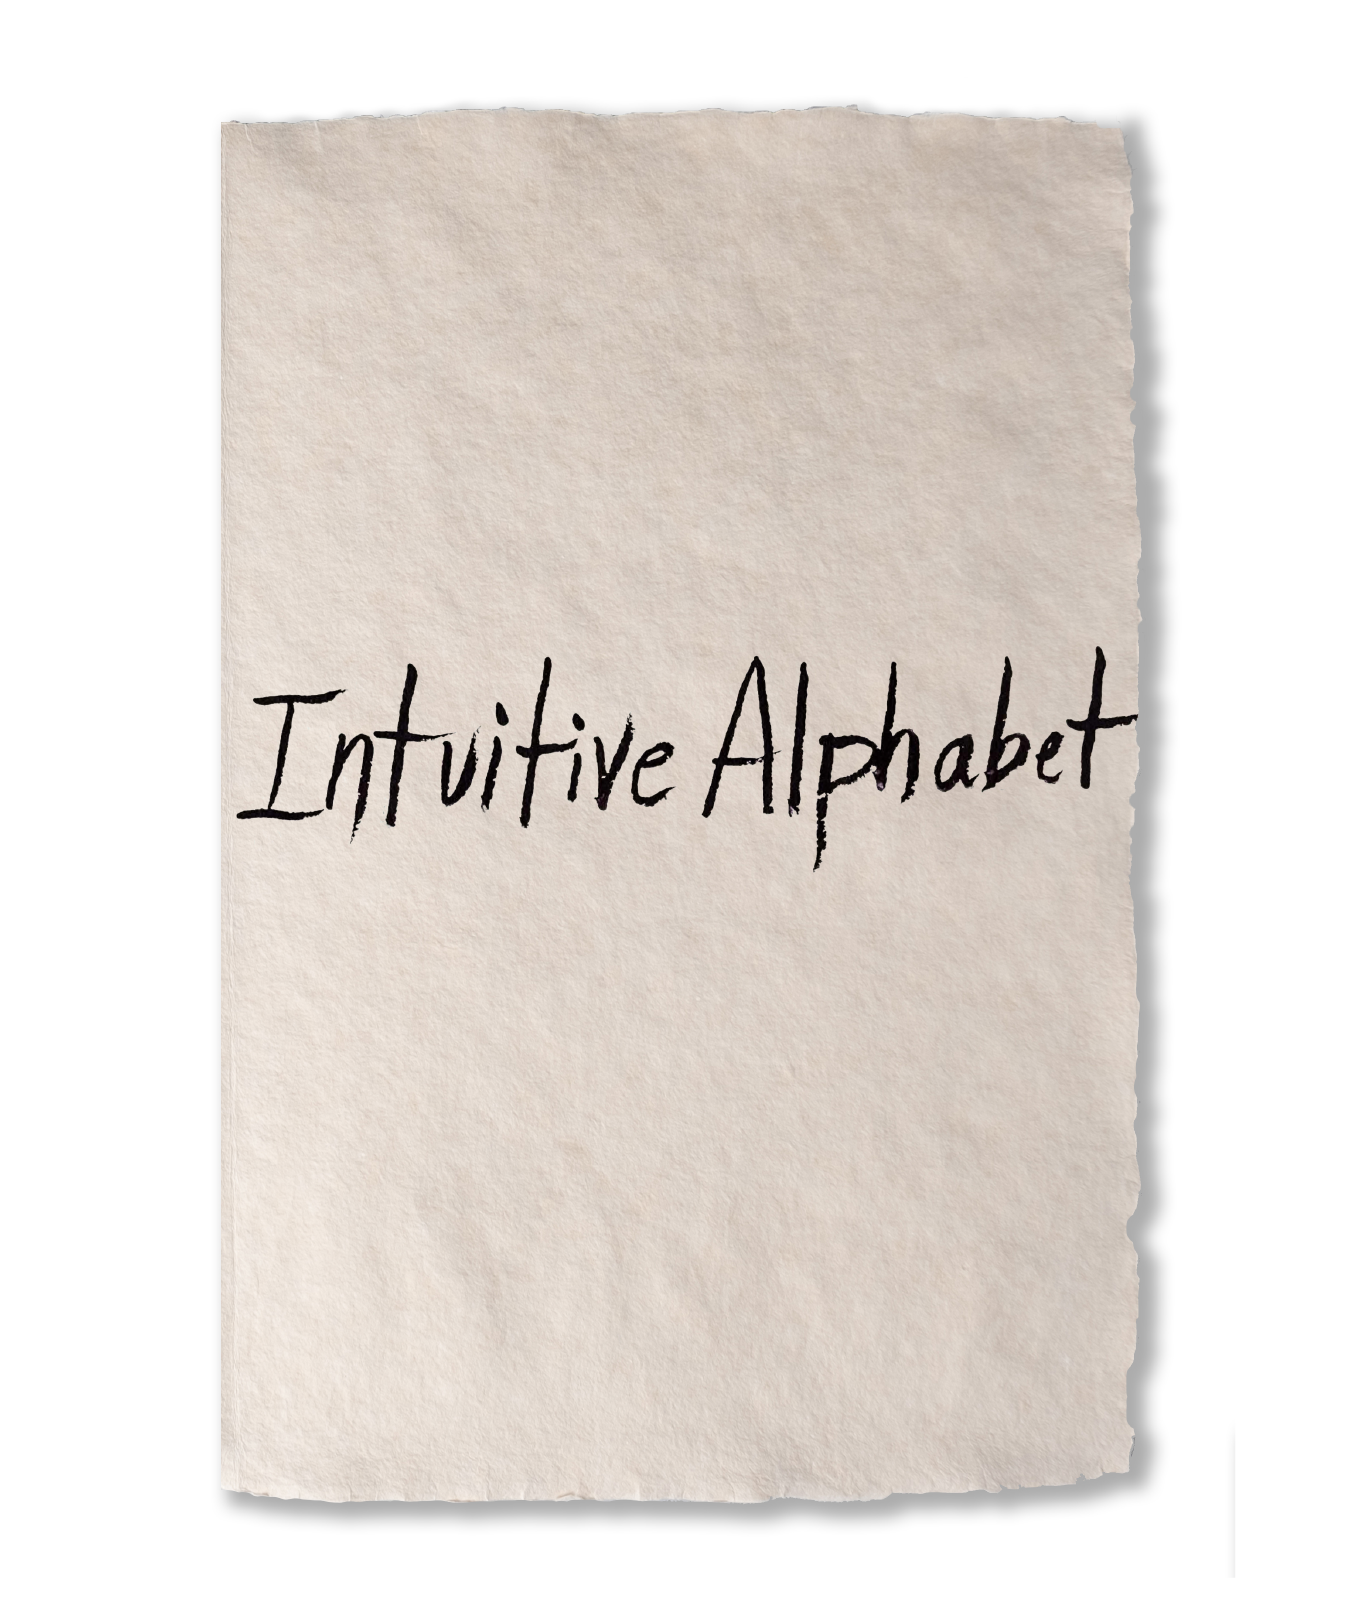 Intuitive Alphabet - Collector's Edition